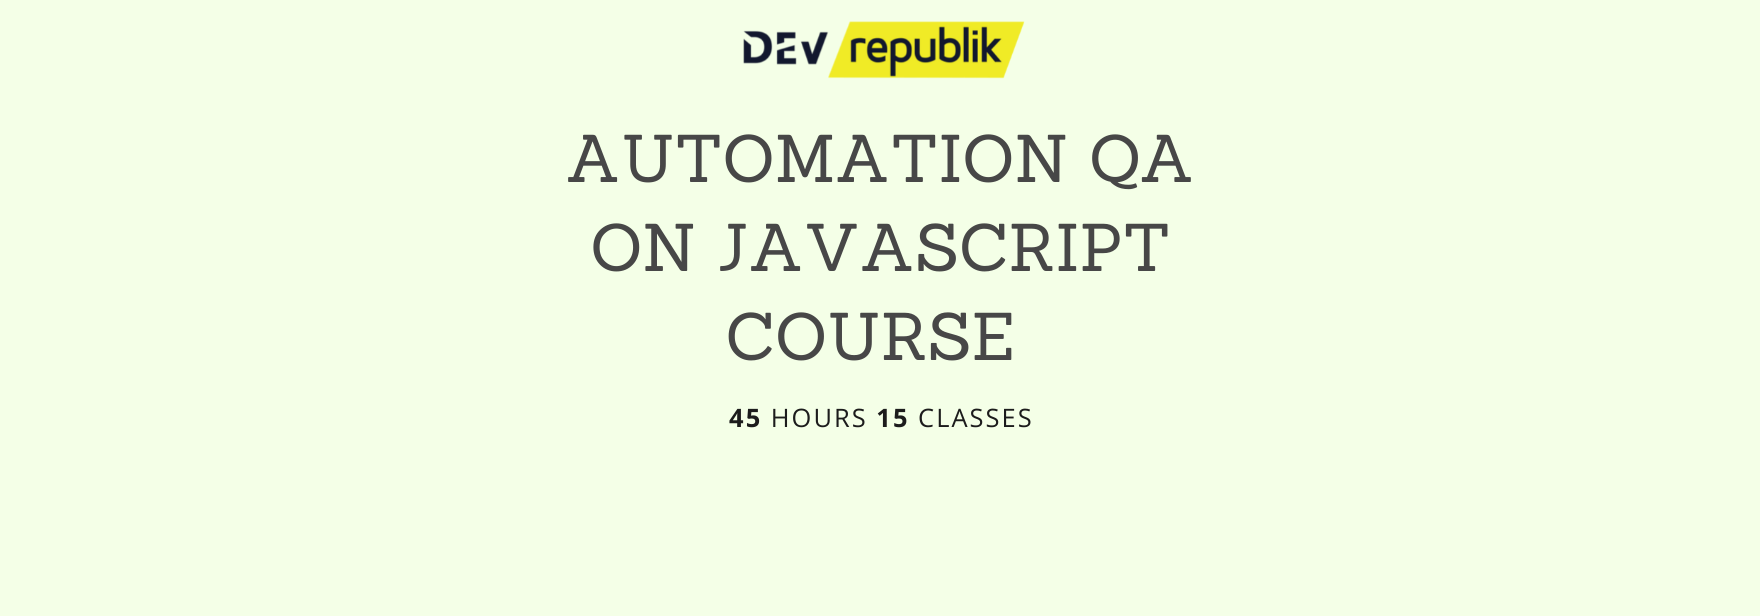 Copy of automation qa course website